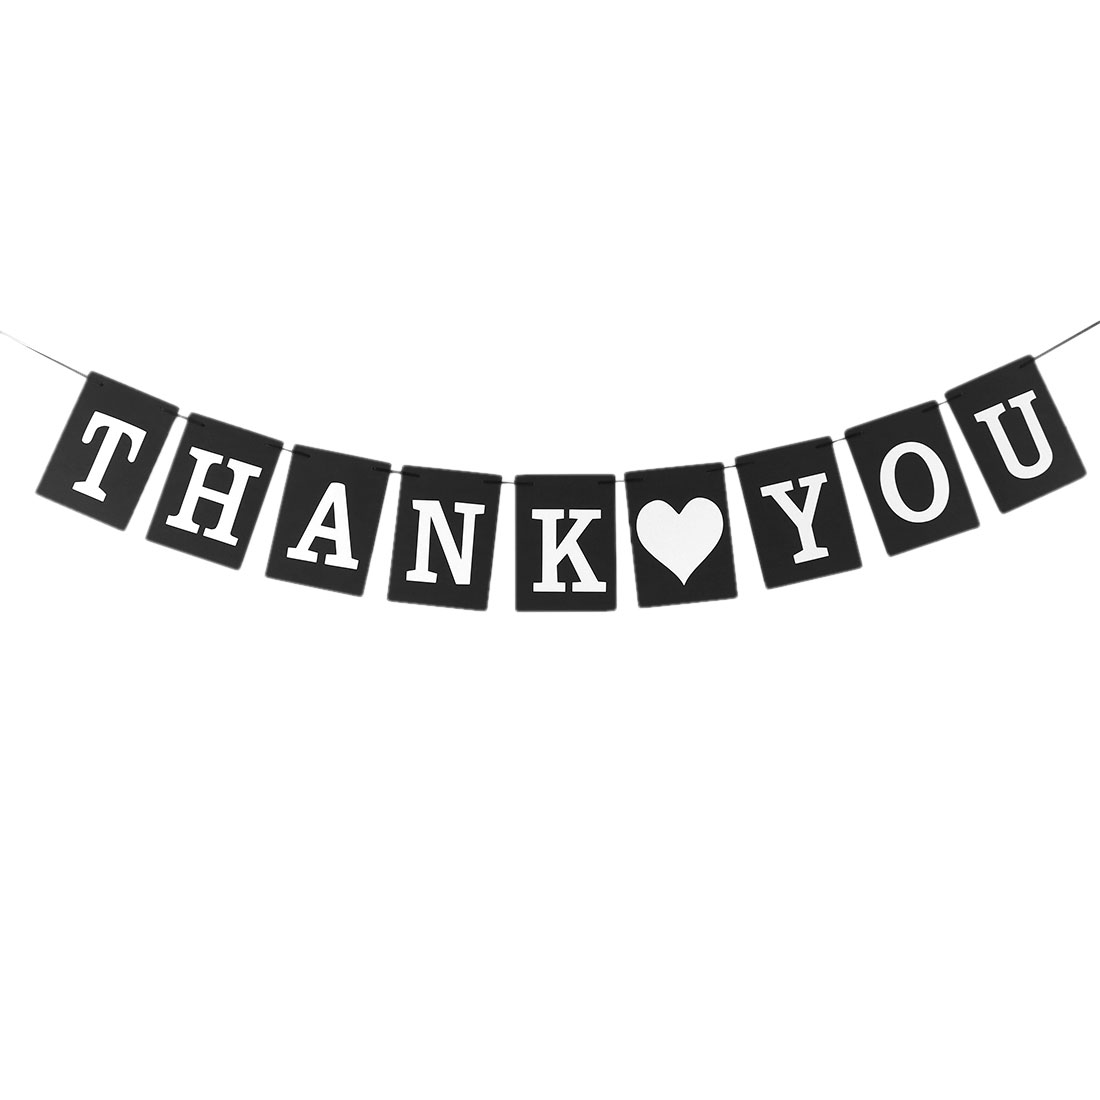 THANK YOU Letter Print Card Rope Hanging DIY Party Photo Prop Banner Black White